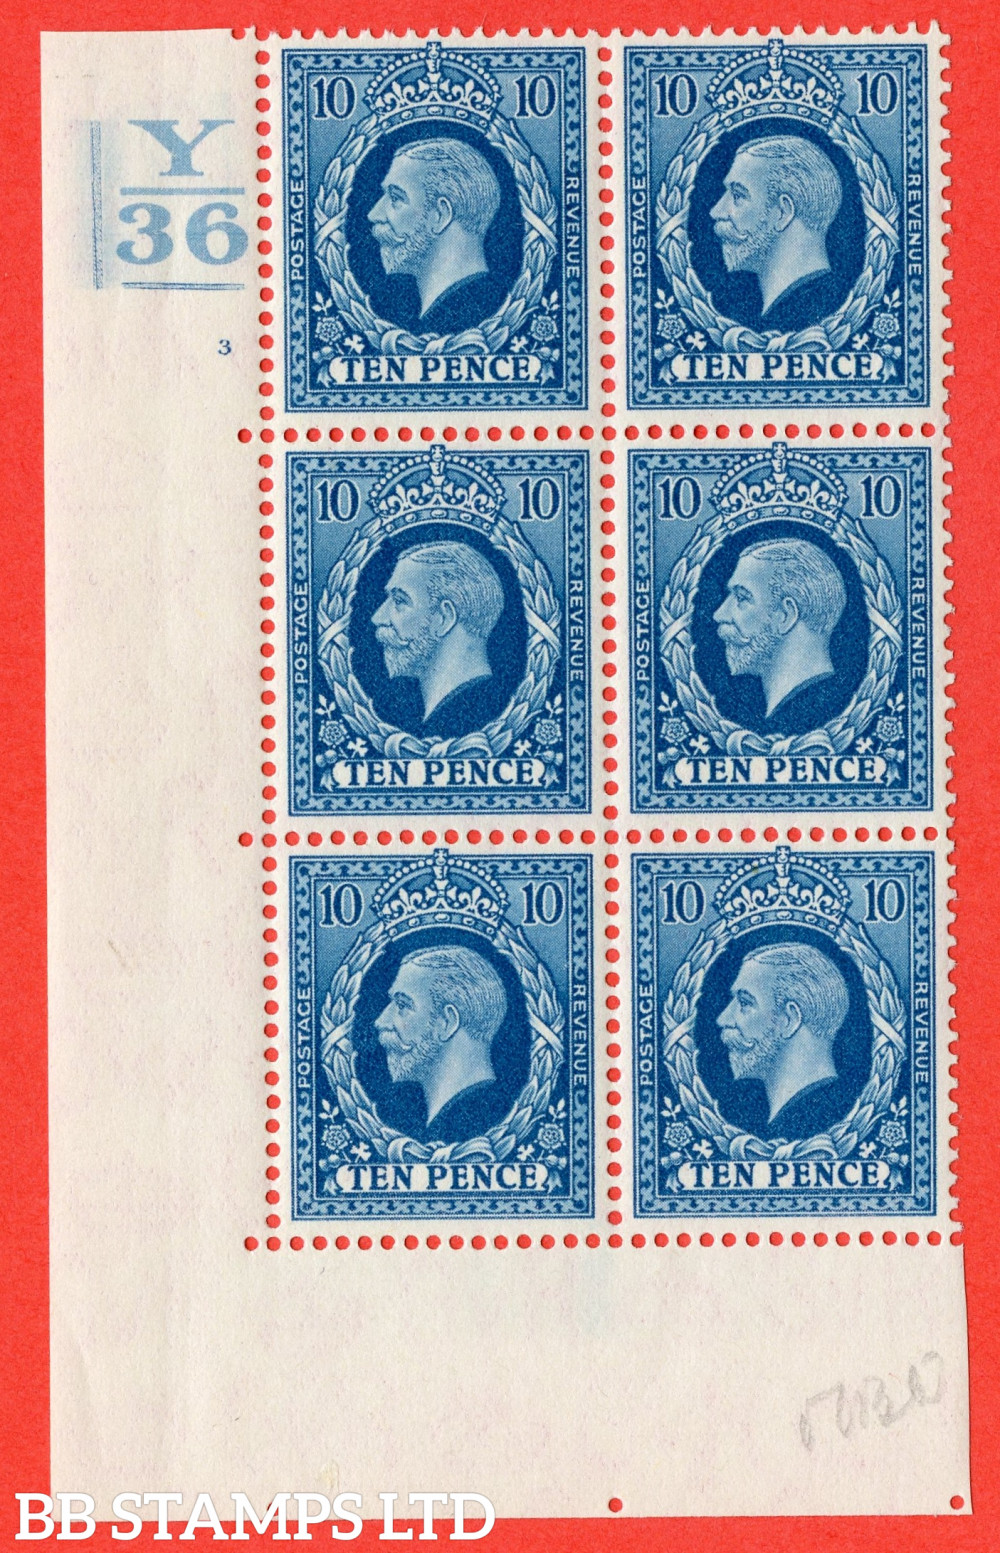 SG. 448. N61. 10d Turquoise-Blue. A very fine mounted mint block of 6. 2 Bars. Control Y36. Cylinder 3 no dot perf type 5 E/I.